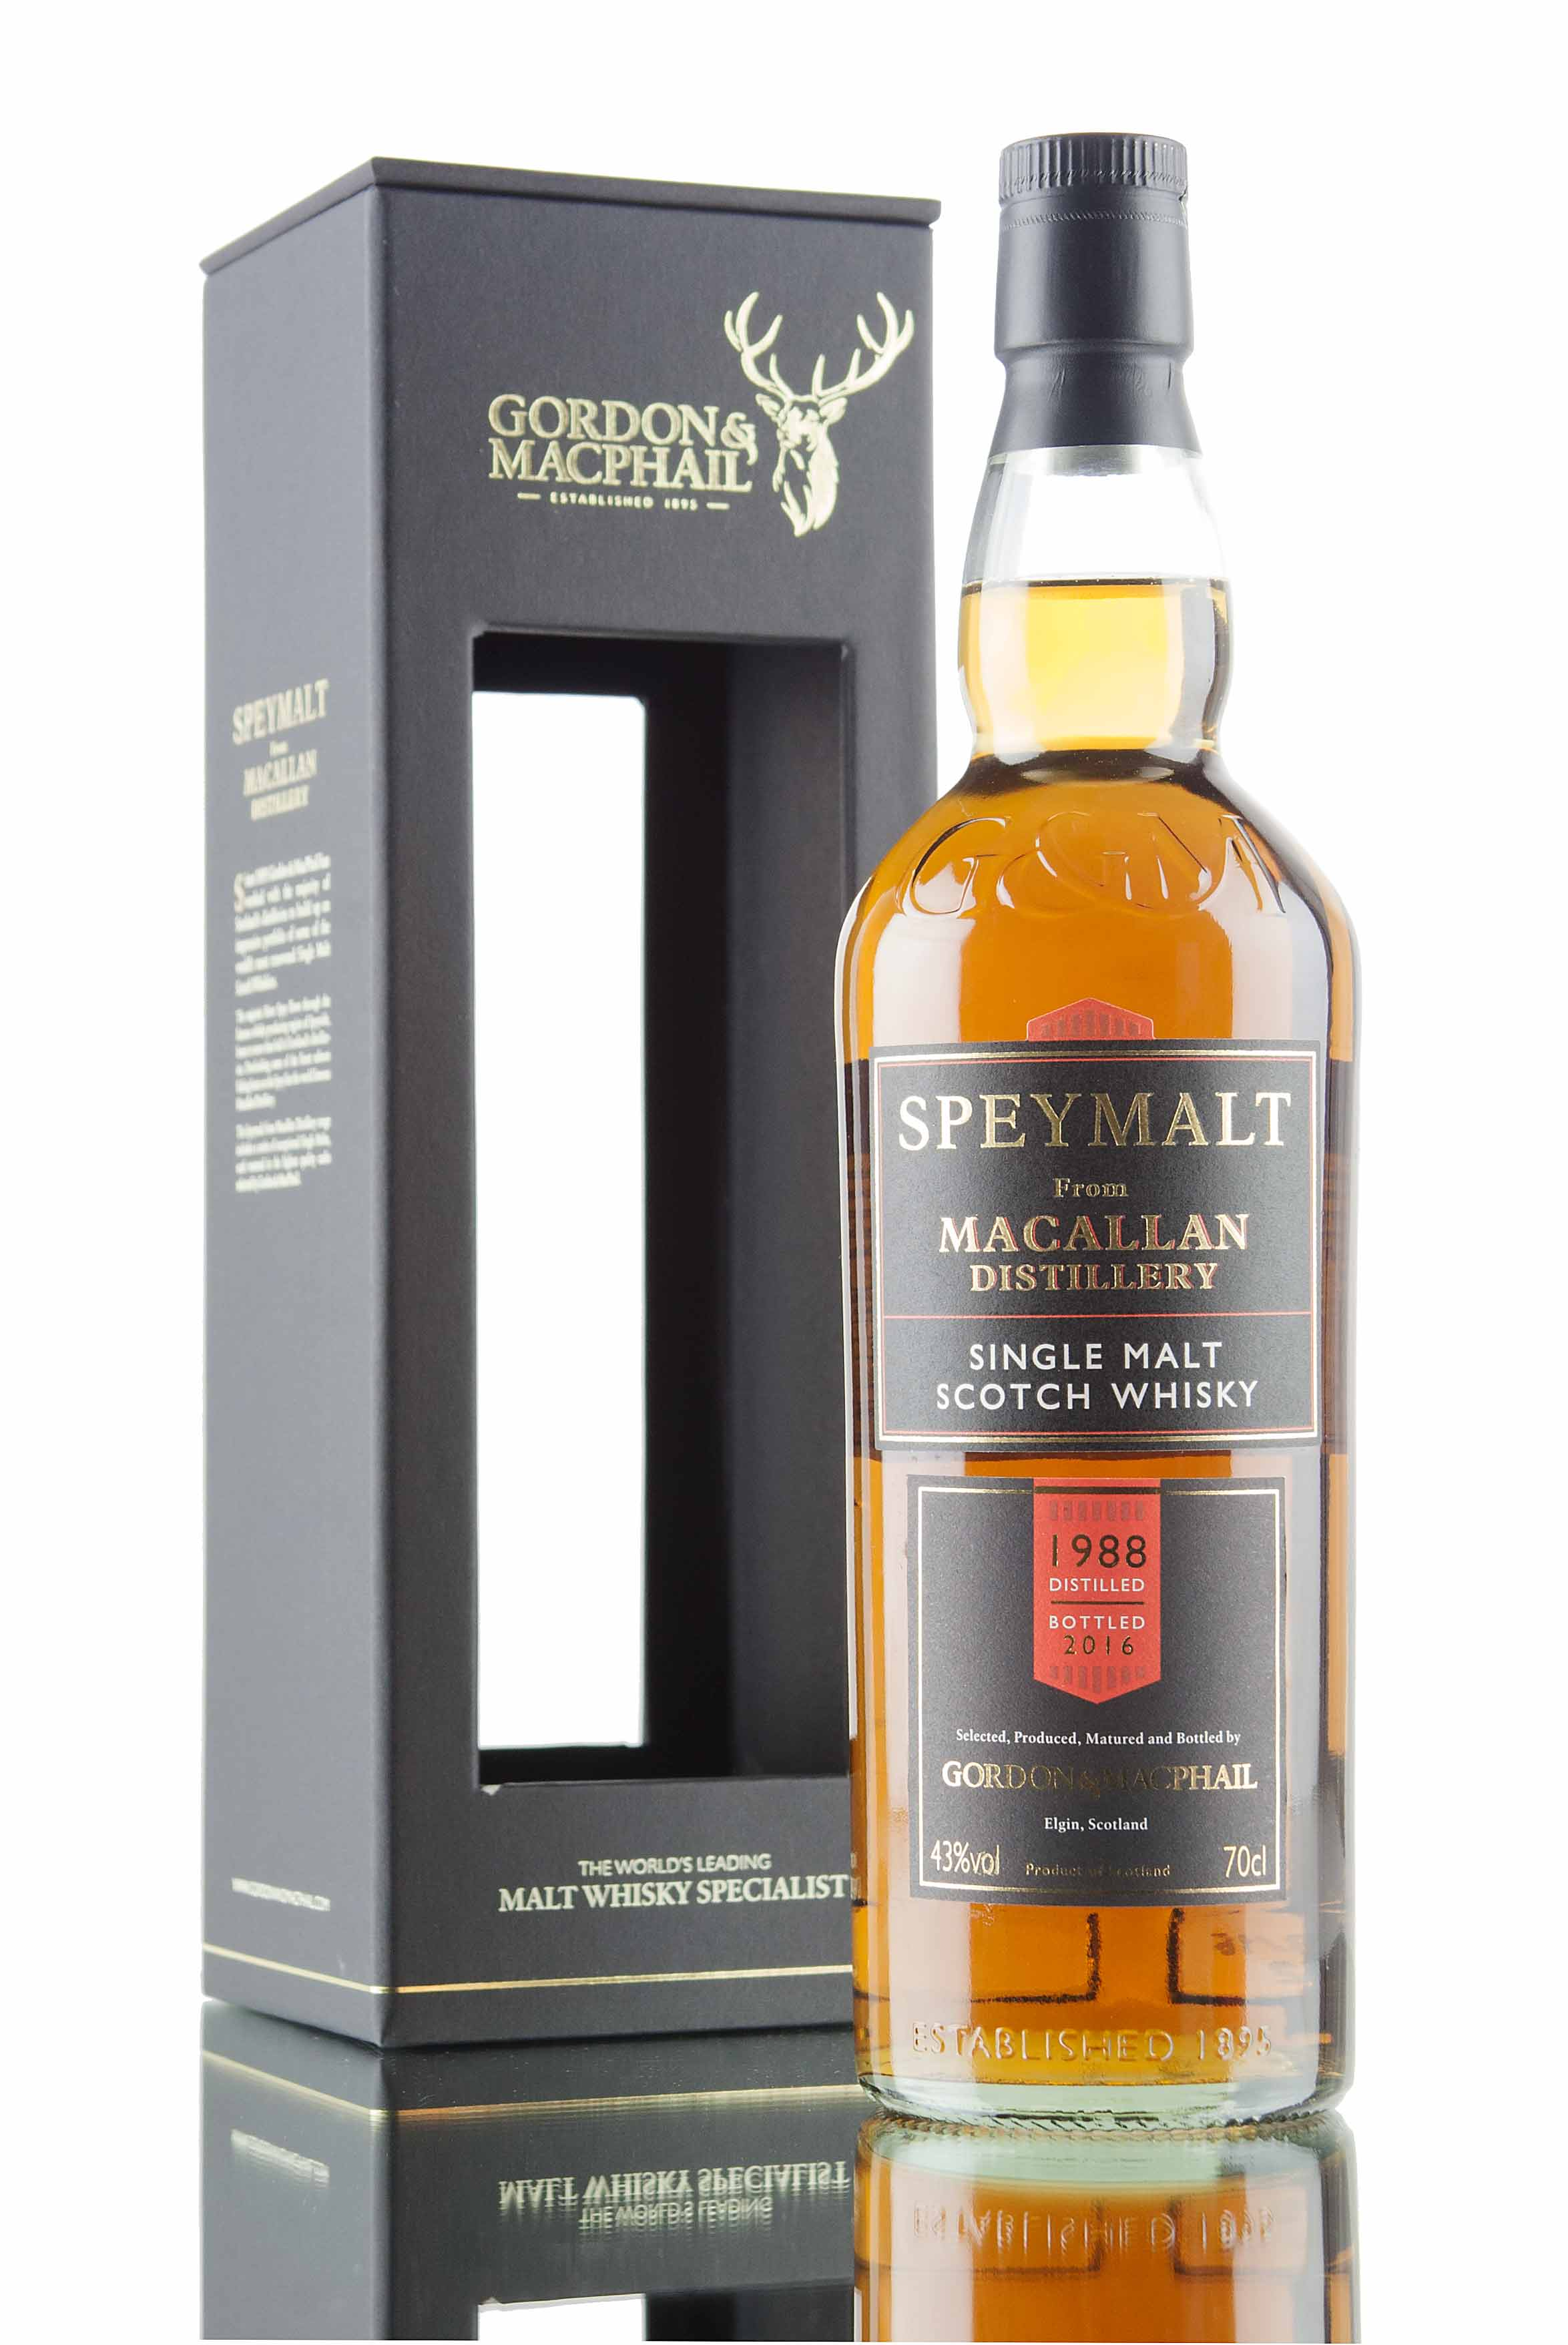 Macallan 1988 Speymalt | Bottled 2016